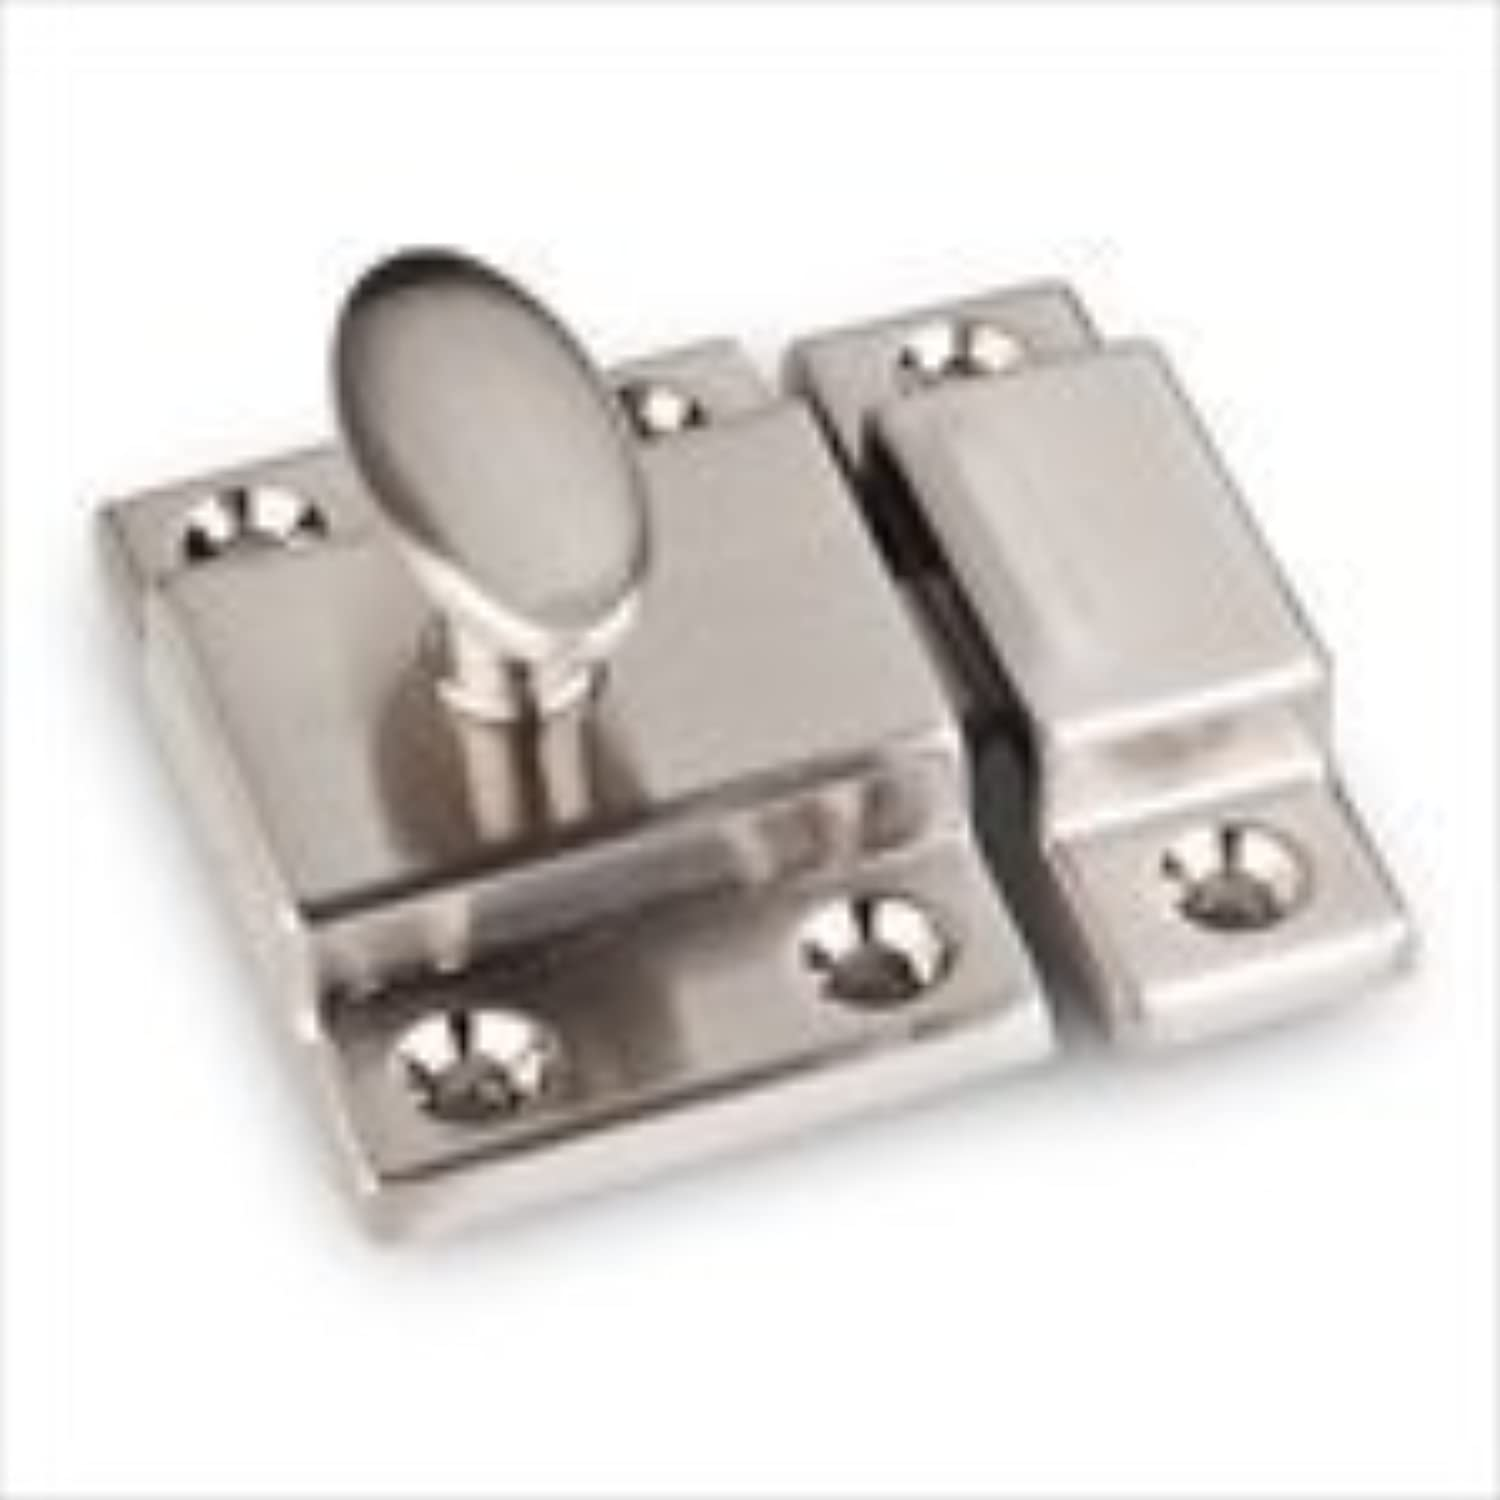 Jeffrey Alexander CL101 Mechanical Cabinet Latch and Strikeplate, Satin Nickel by Cabinet Components